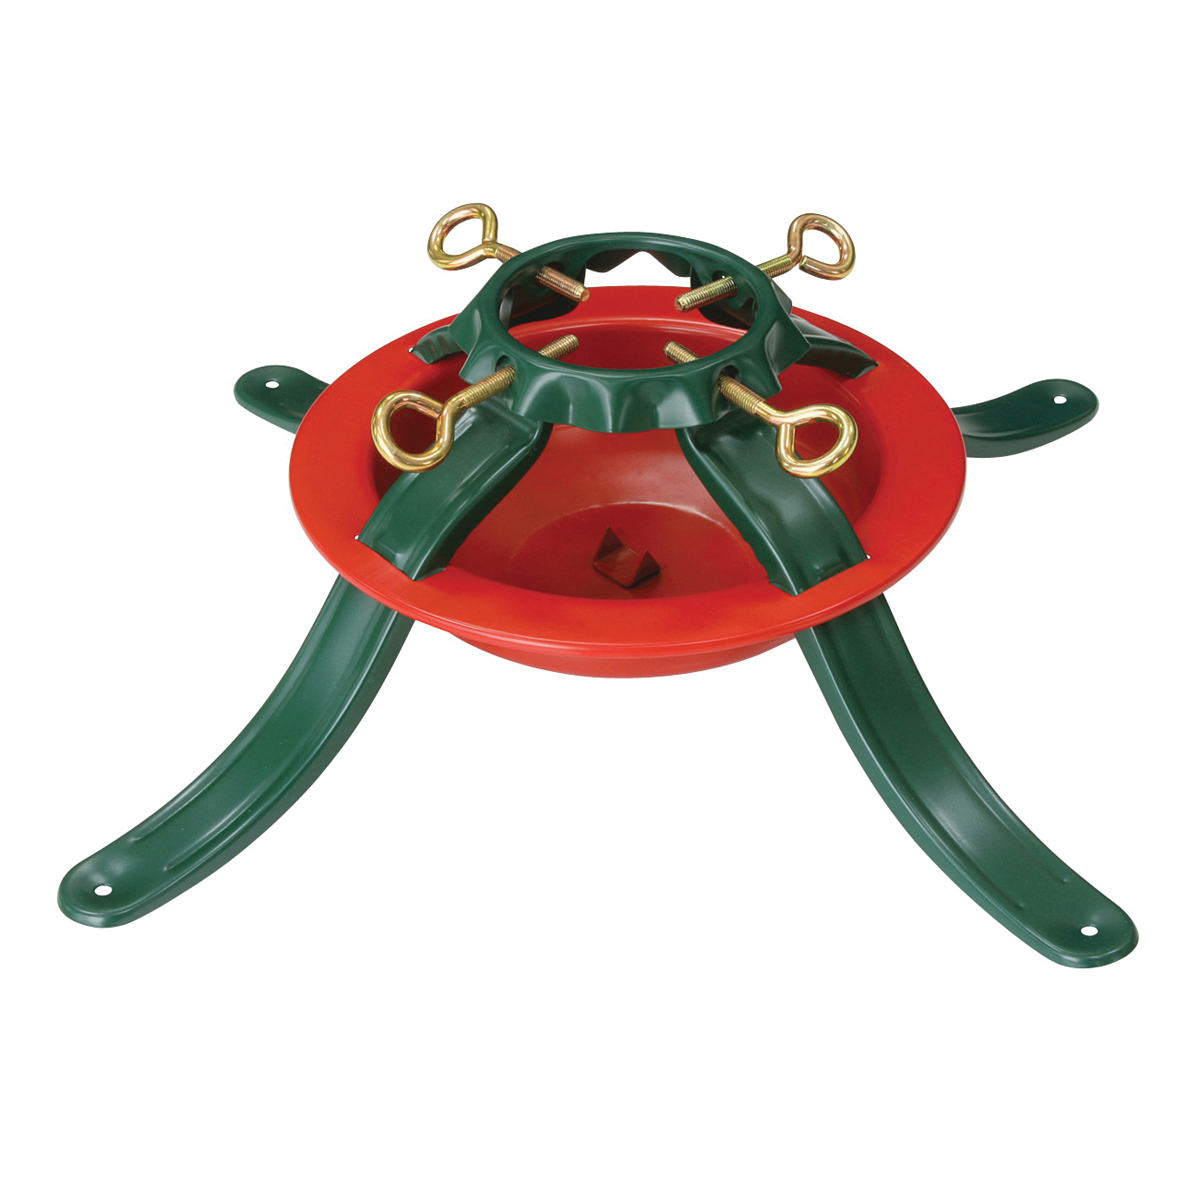 Picture of Holidaybasix 5164 Natural Tree Stand, Steel, Green/Red, Powder-Coated